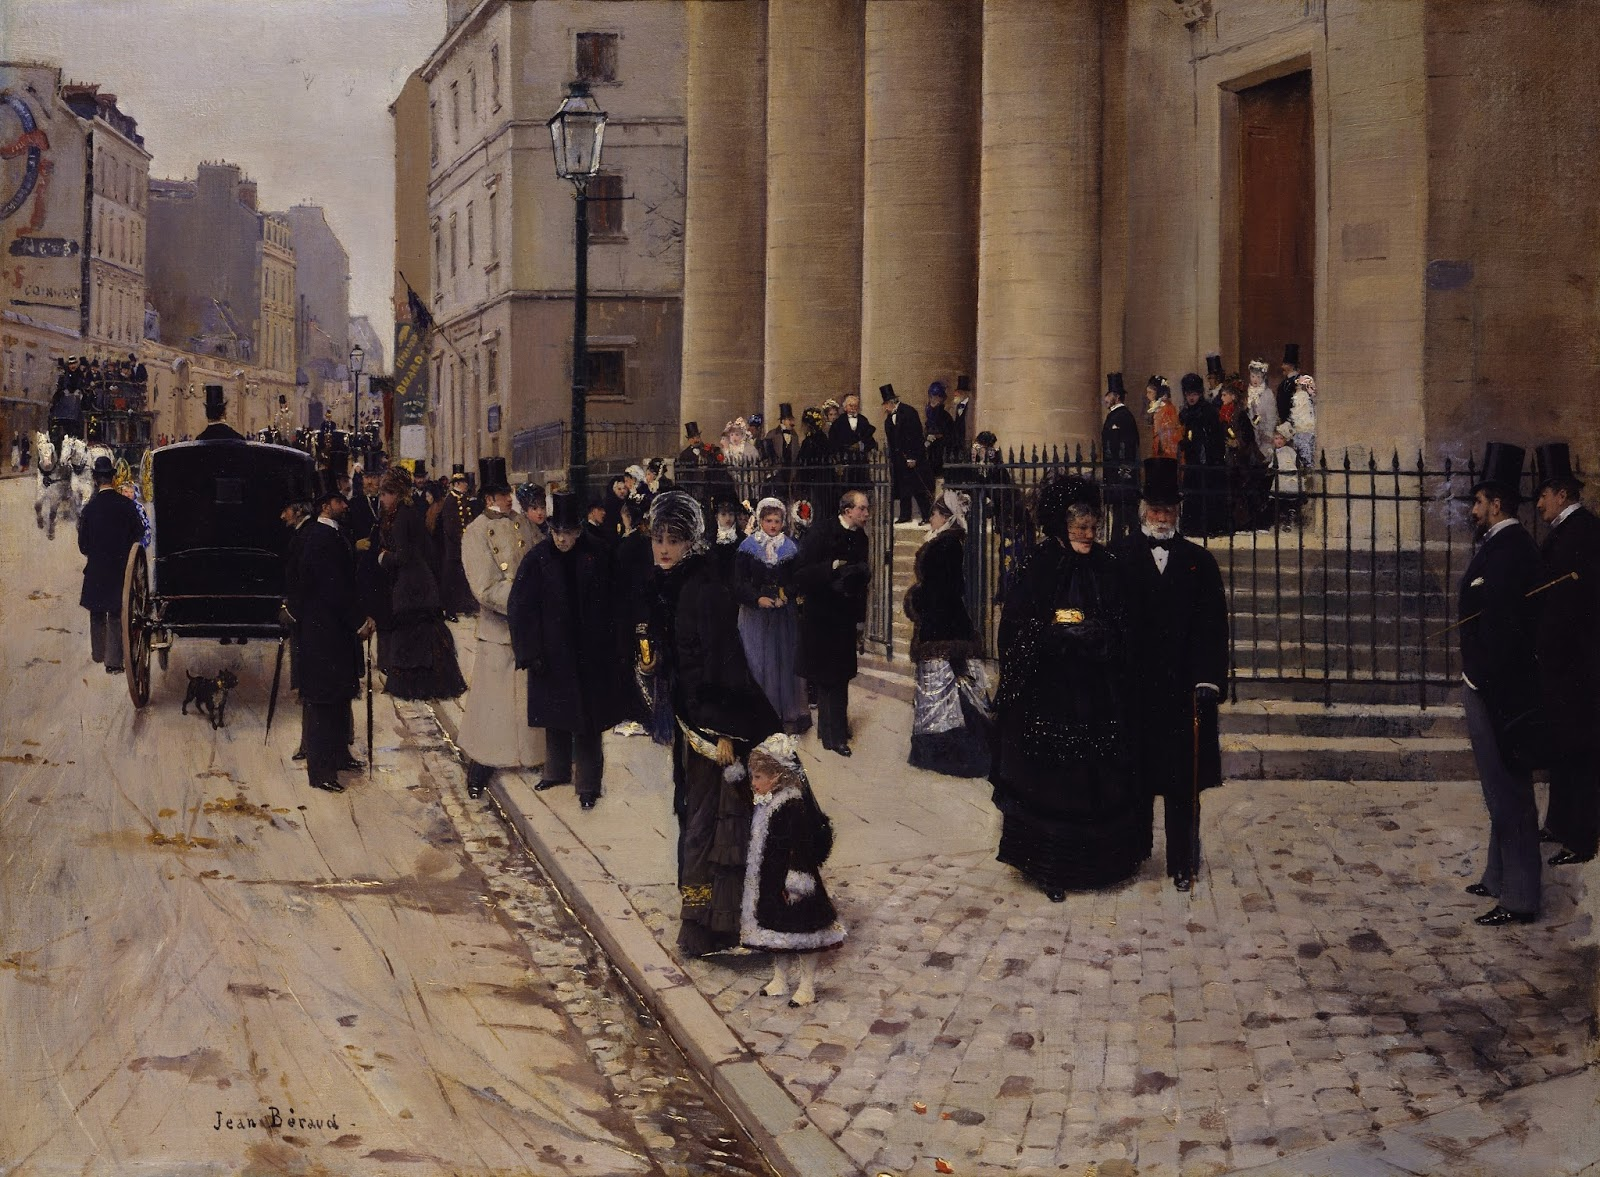 Jean    C Araud  The  Church  of  Saint Philippe du Roule